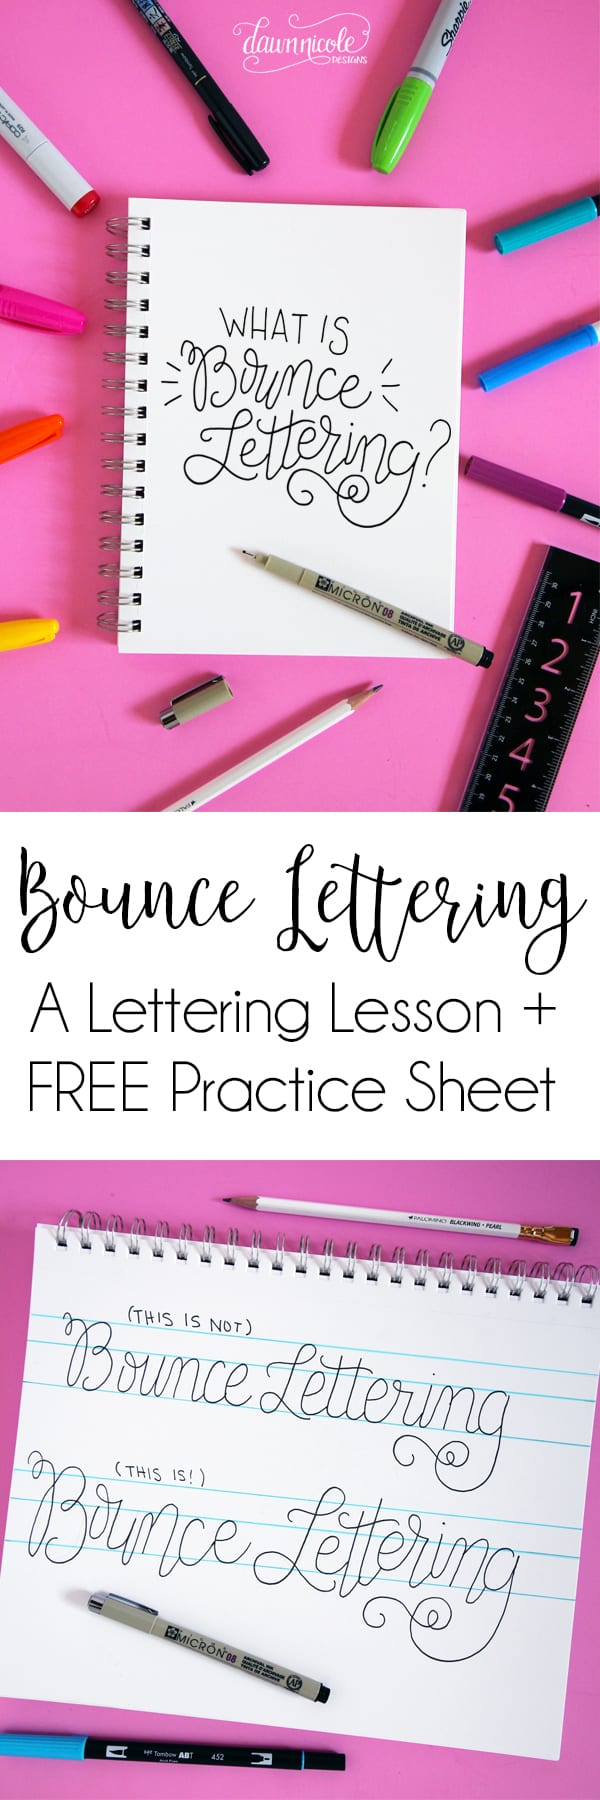 How to Do Bounce Lettering | Dawn Nicole Designs®